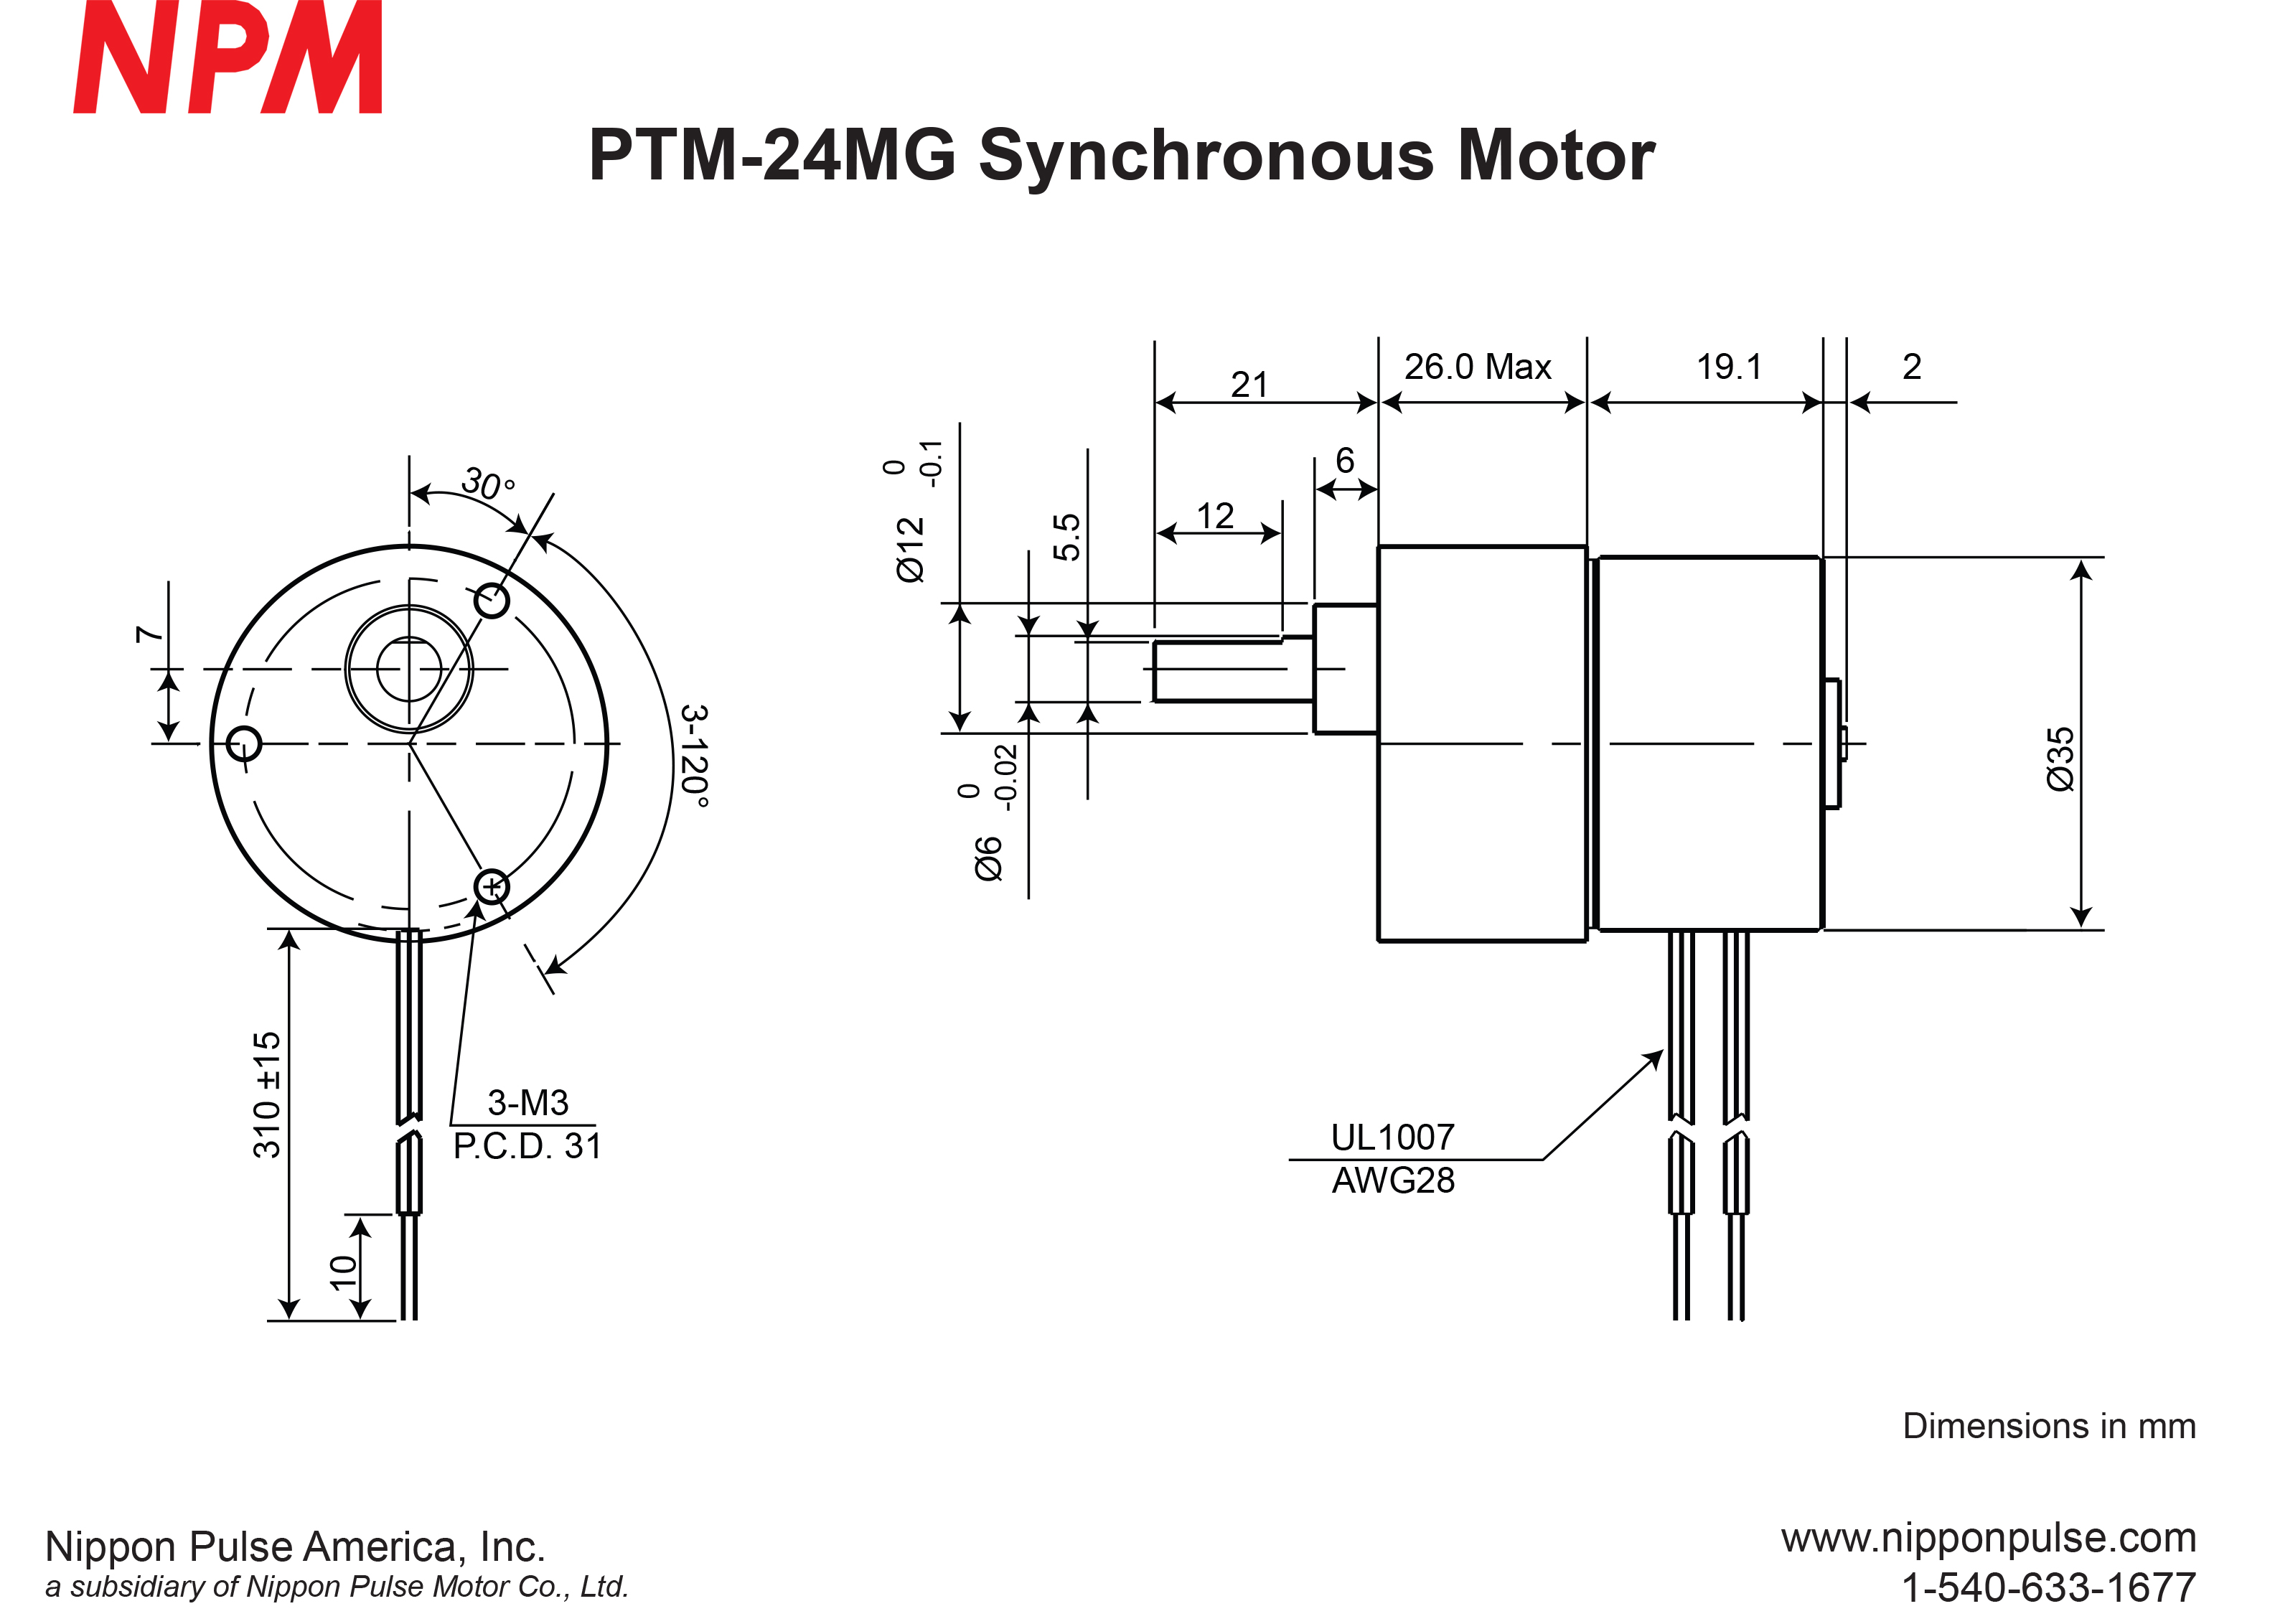 PTM-24MG(1/5) system drawing